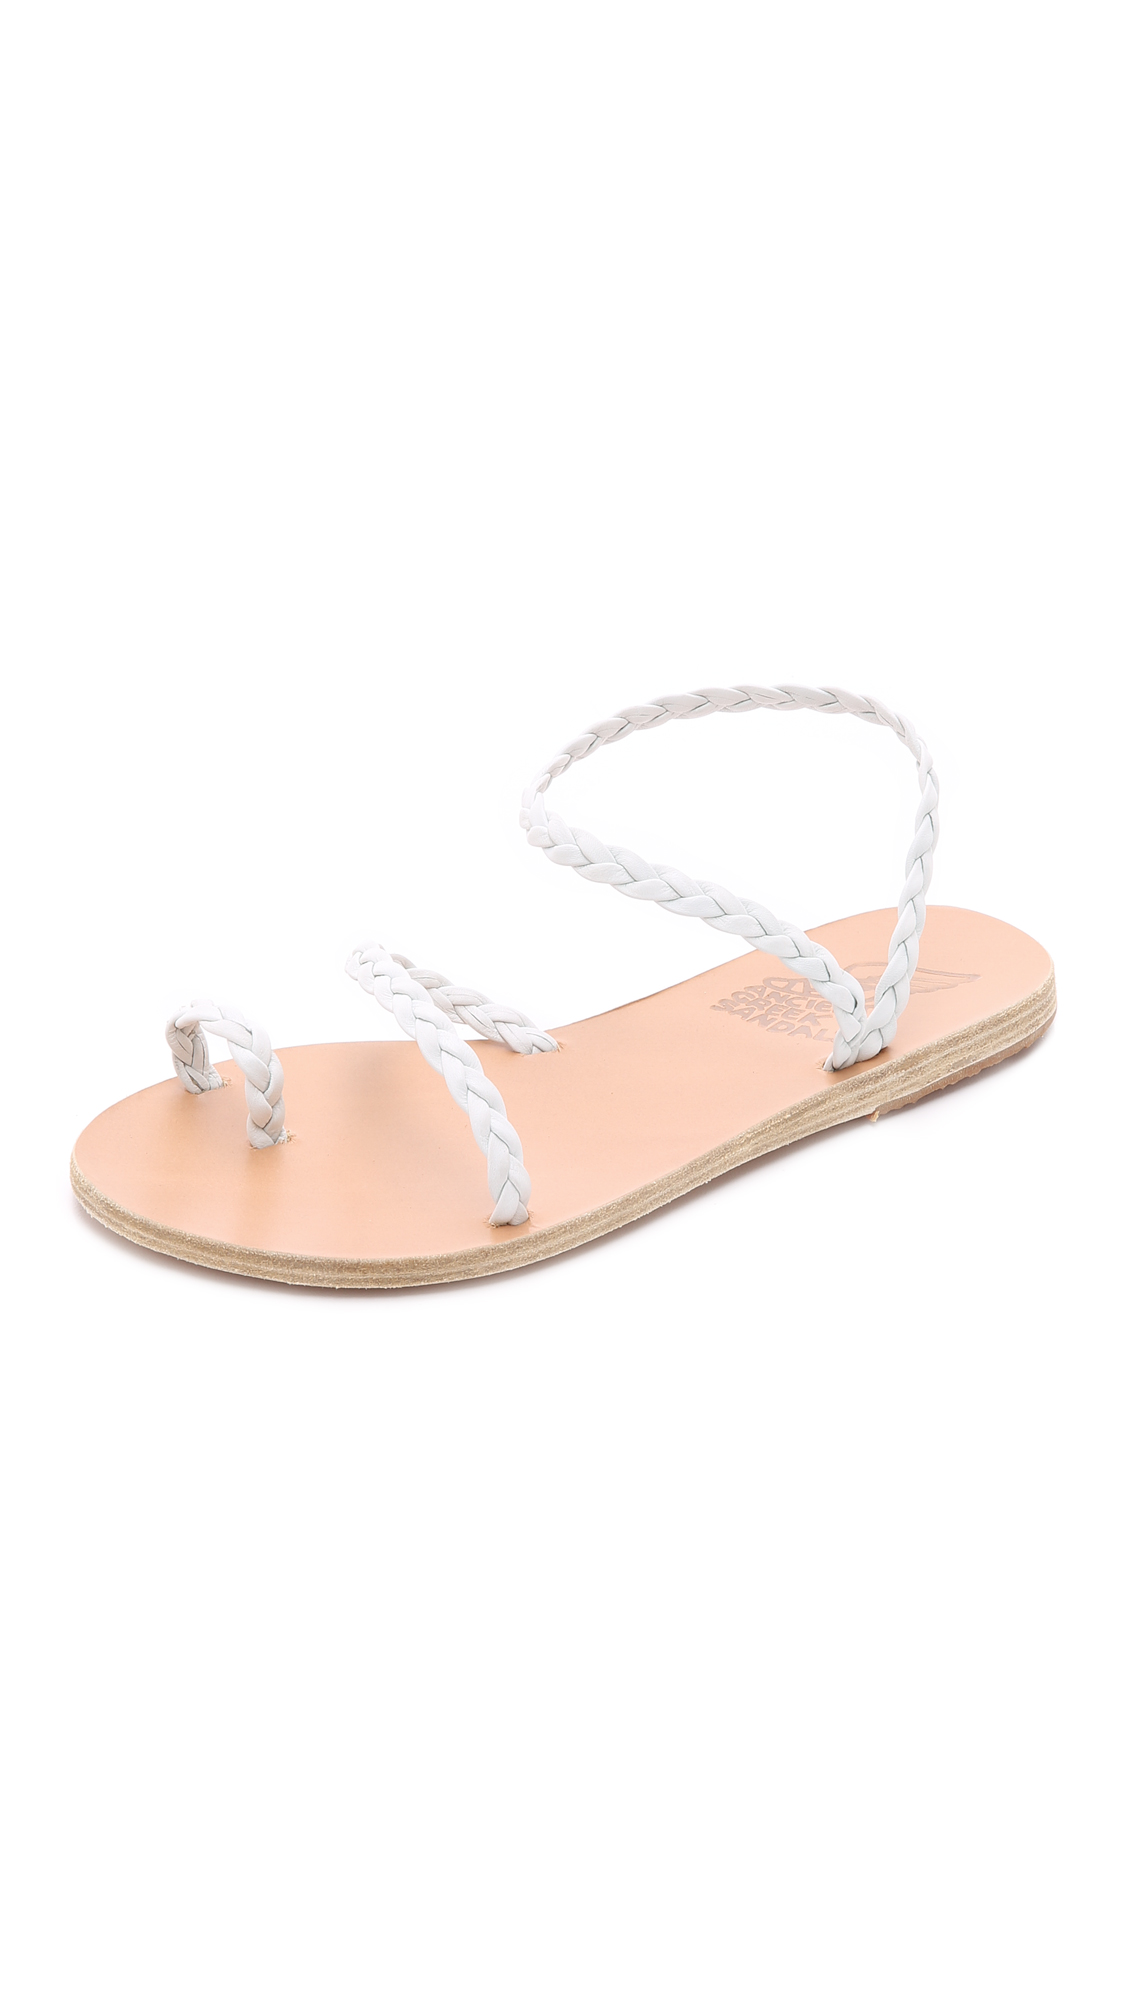 braided Eleftheria strappy sandals - White Ancient Greek Sandals Outlet The Cheapest Discount New Styles Cheap Sale Wide Range Of Discount Buy hRTsgzD